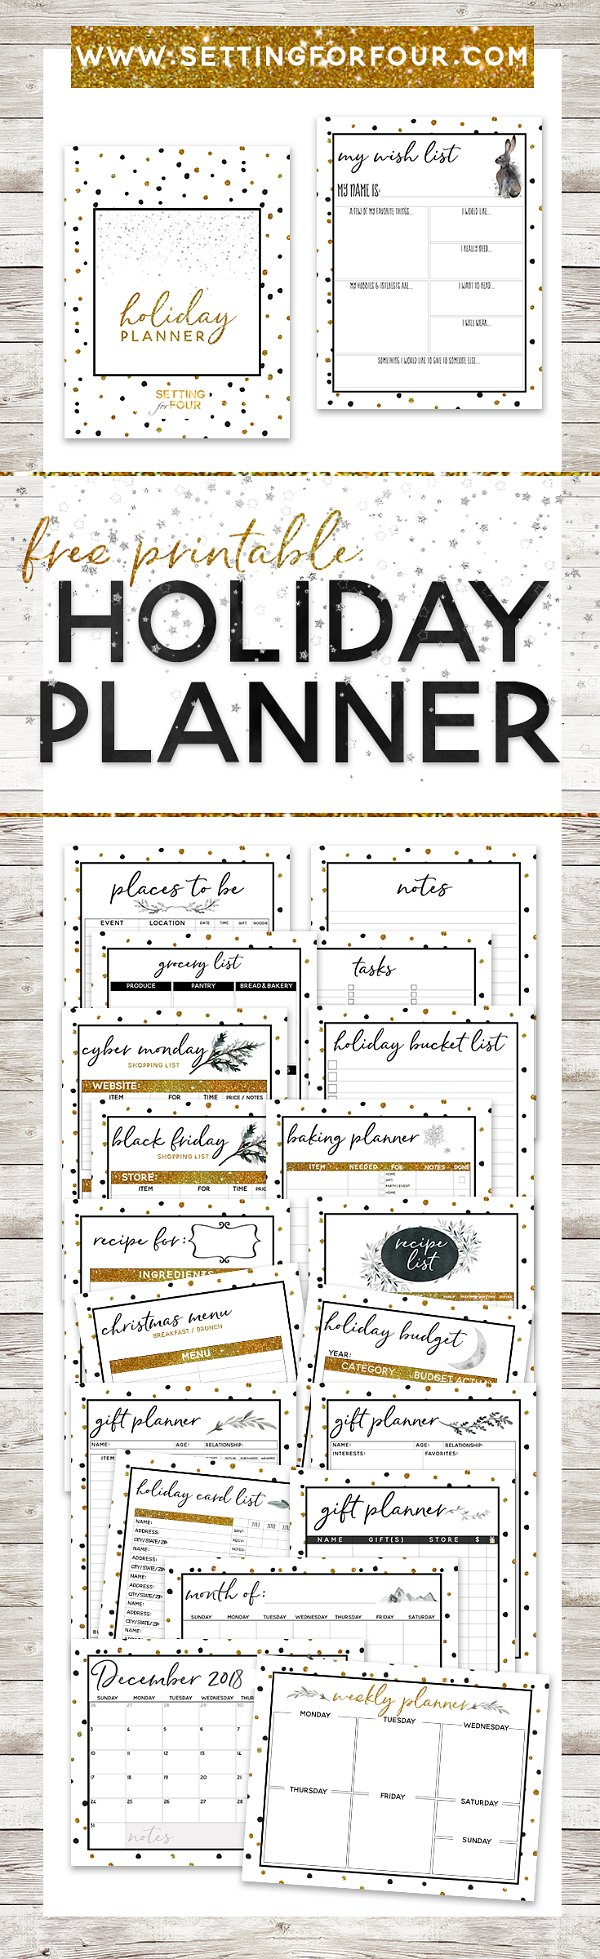 FREE Printable Holiday Planner – 27 Pages to Organize and Plan ...